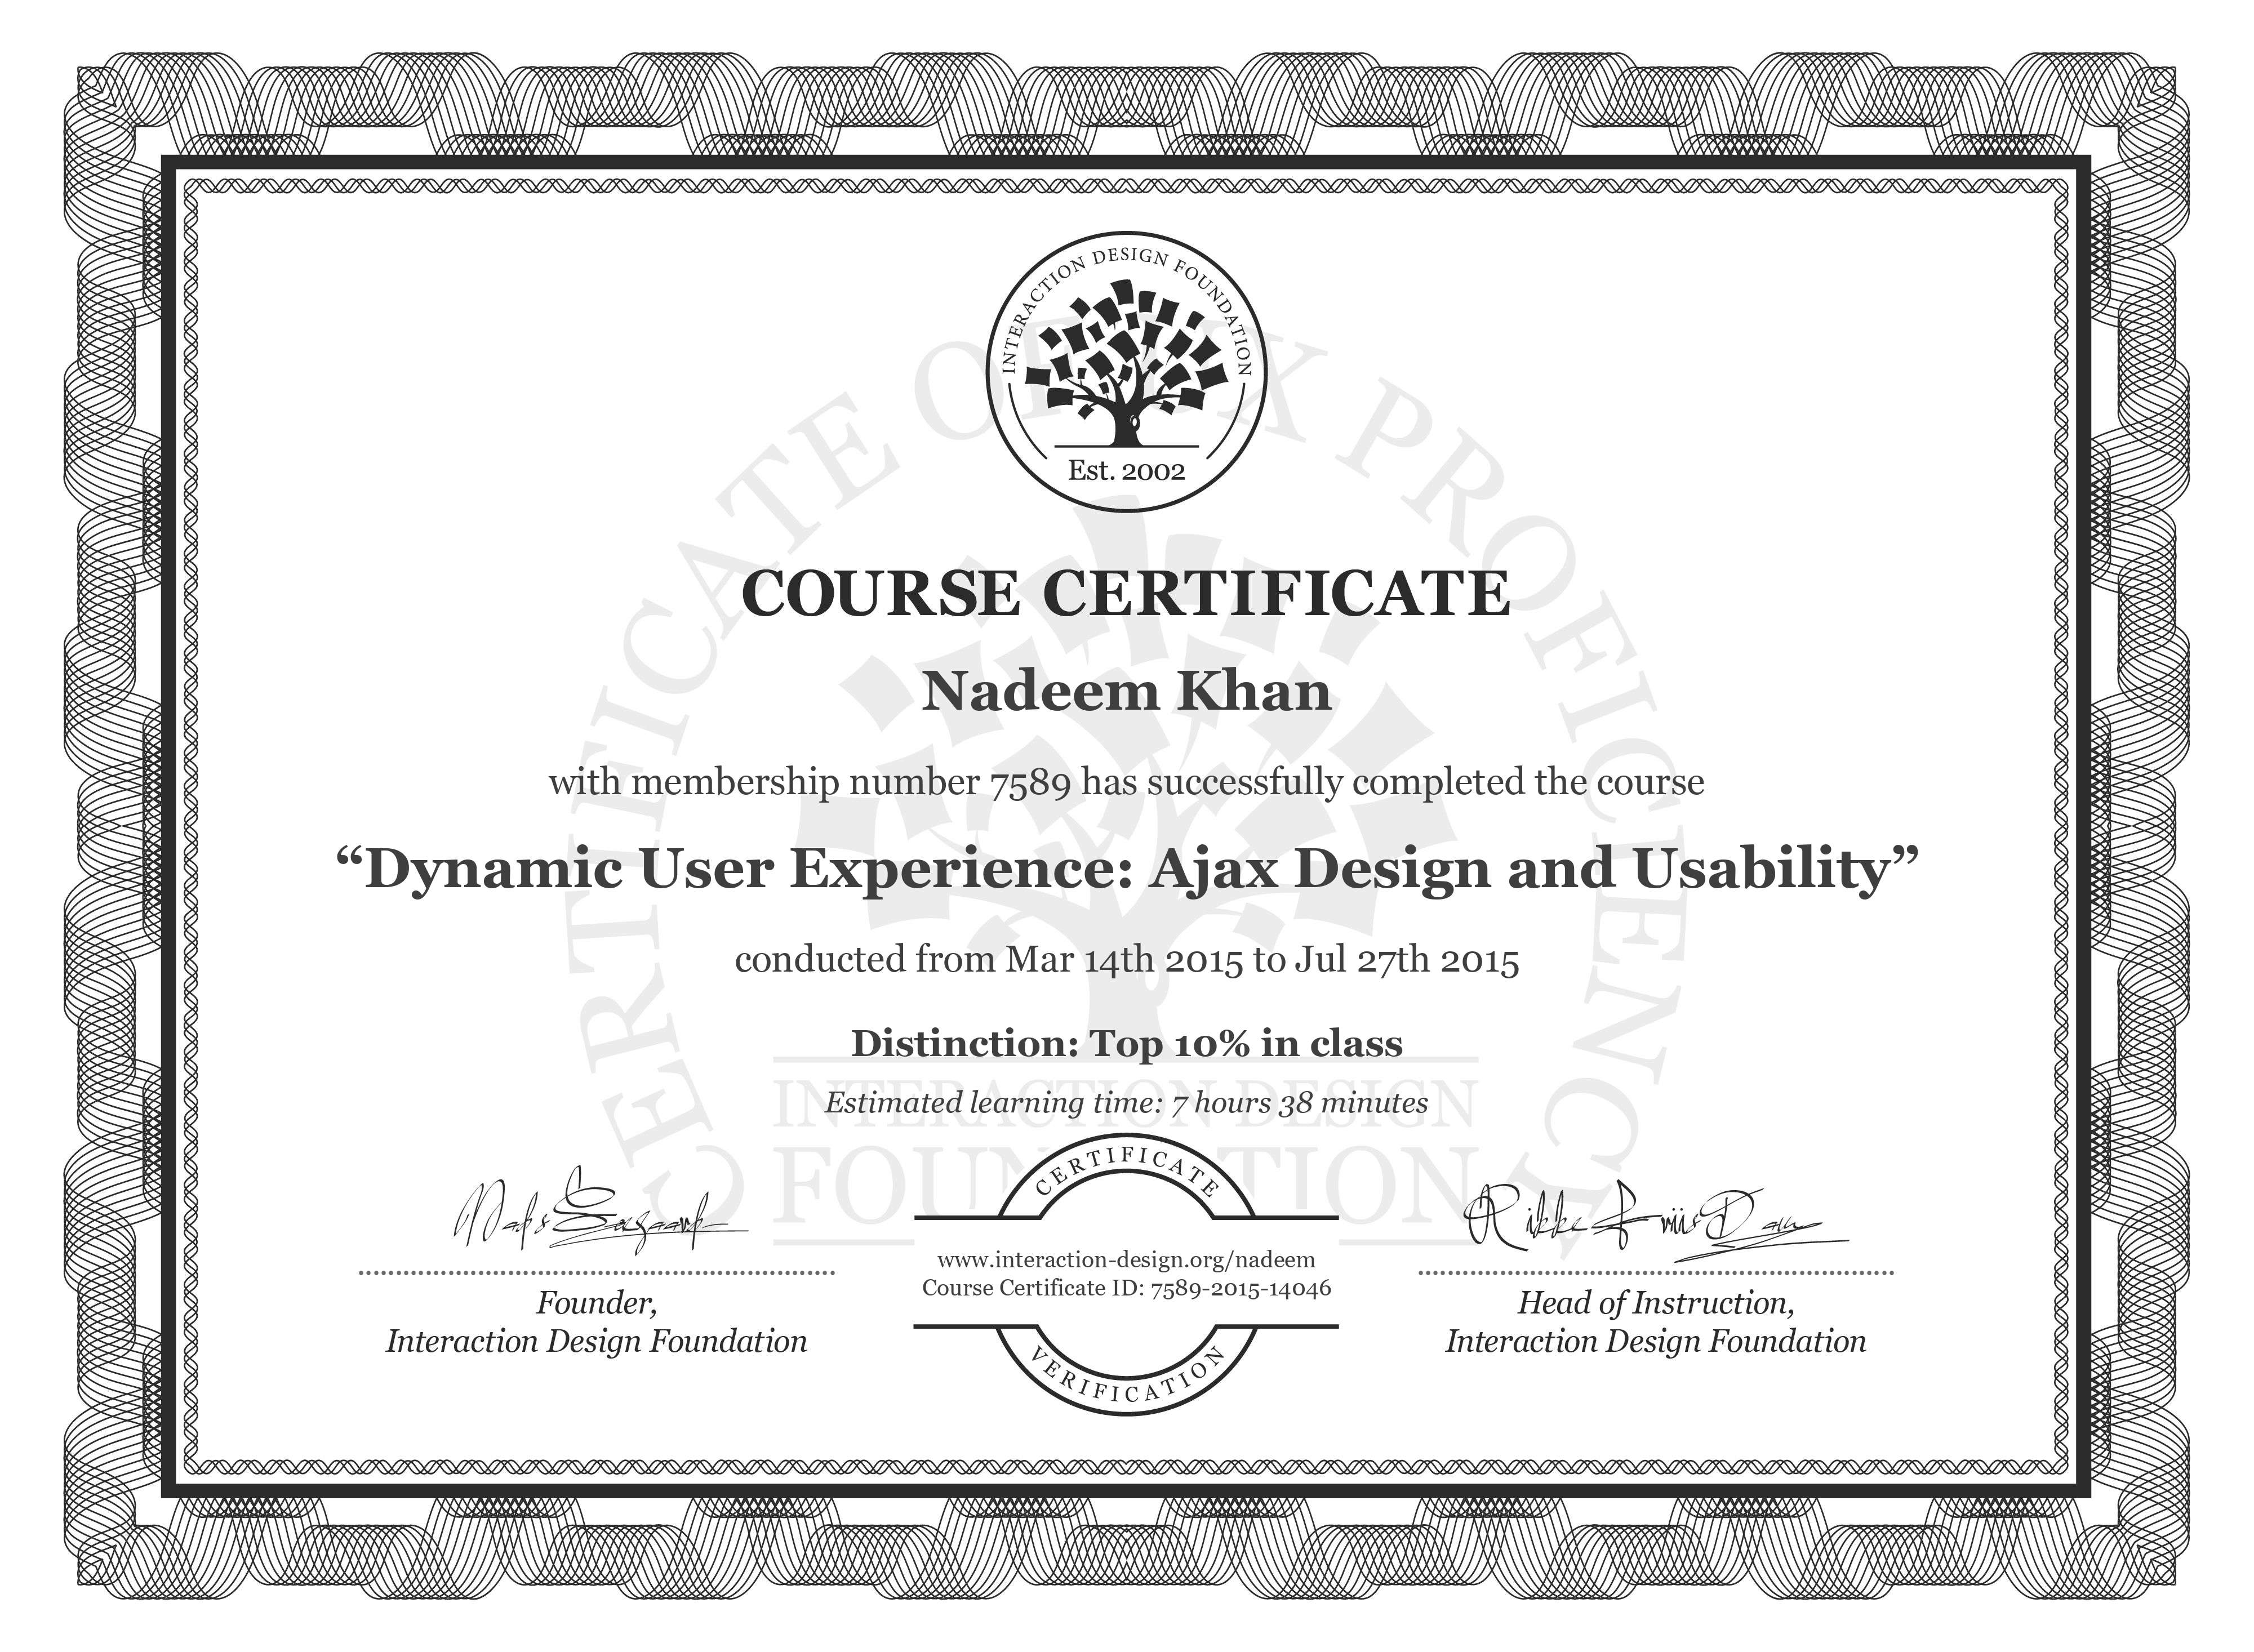 Nadeem Khan: Course Certificate - Dynamic User Experience: Ajax Design and Usability